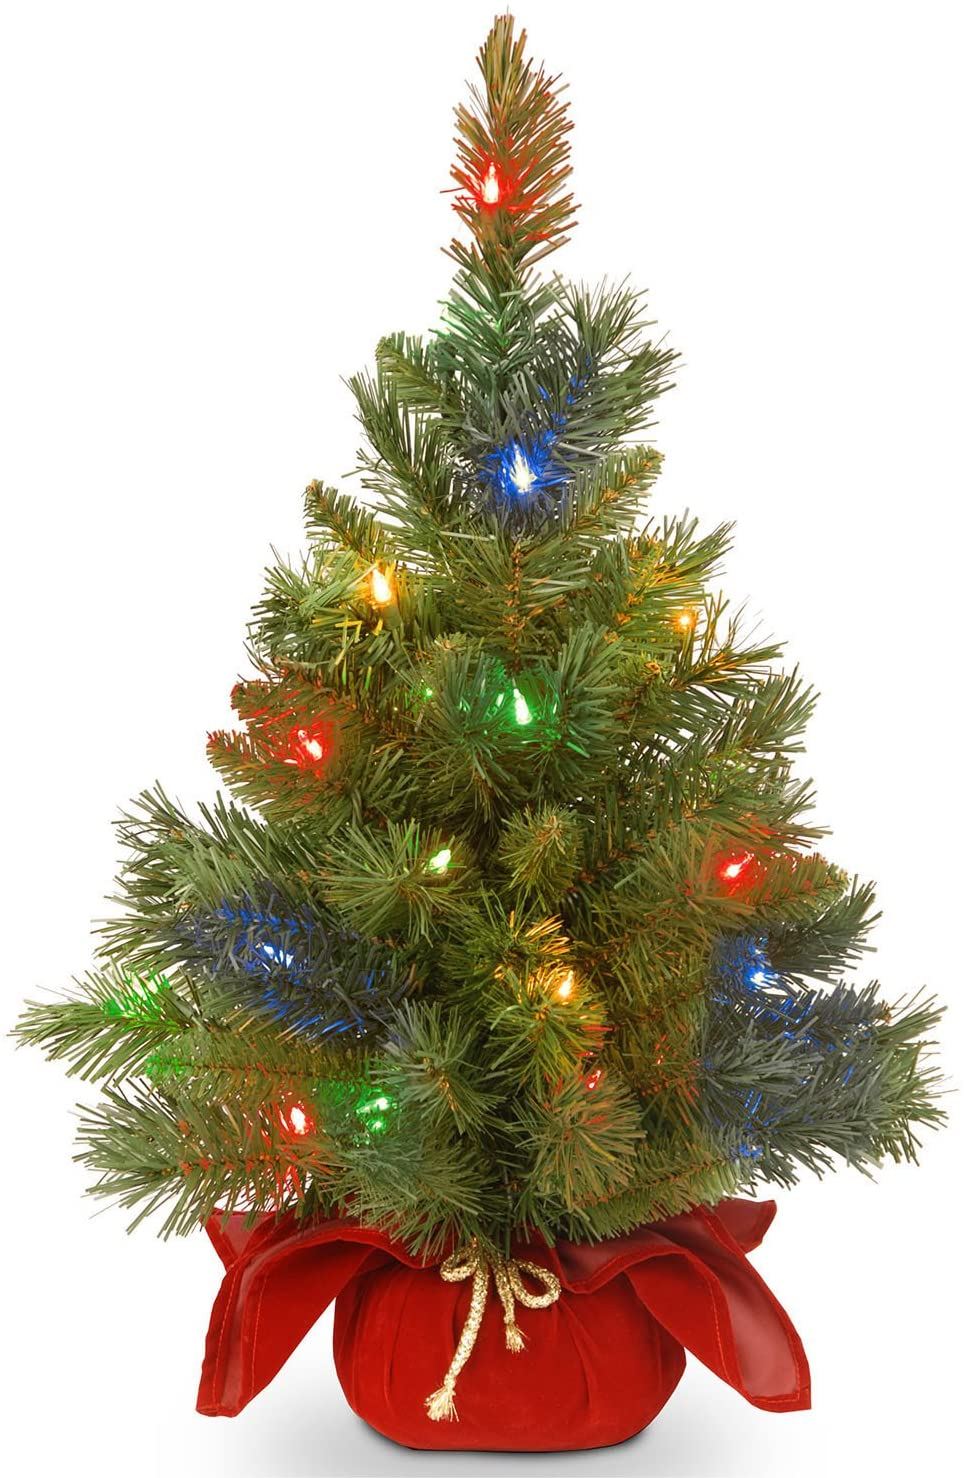 Best Prelit Christmas Trees You Can Find Our 2020 Reviews